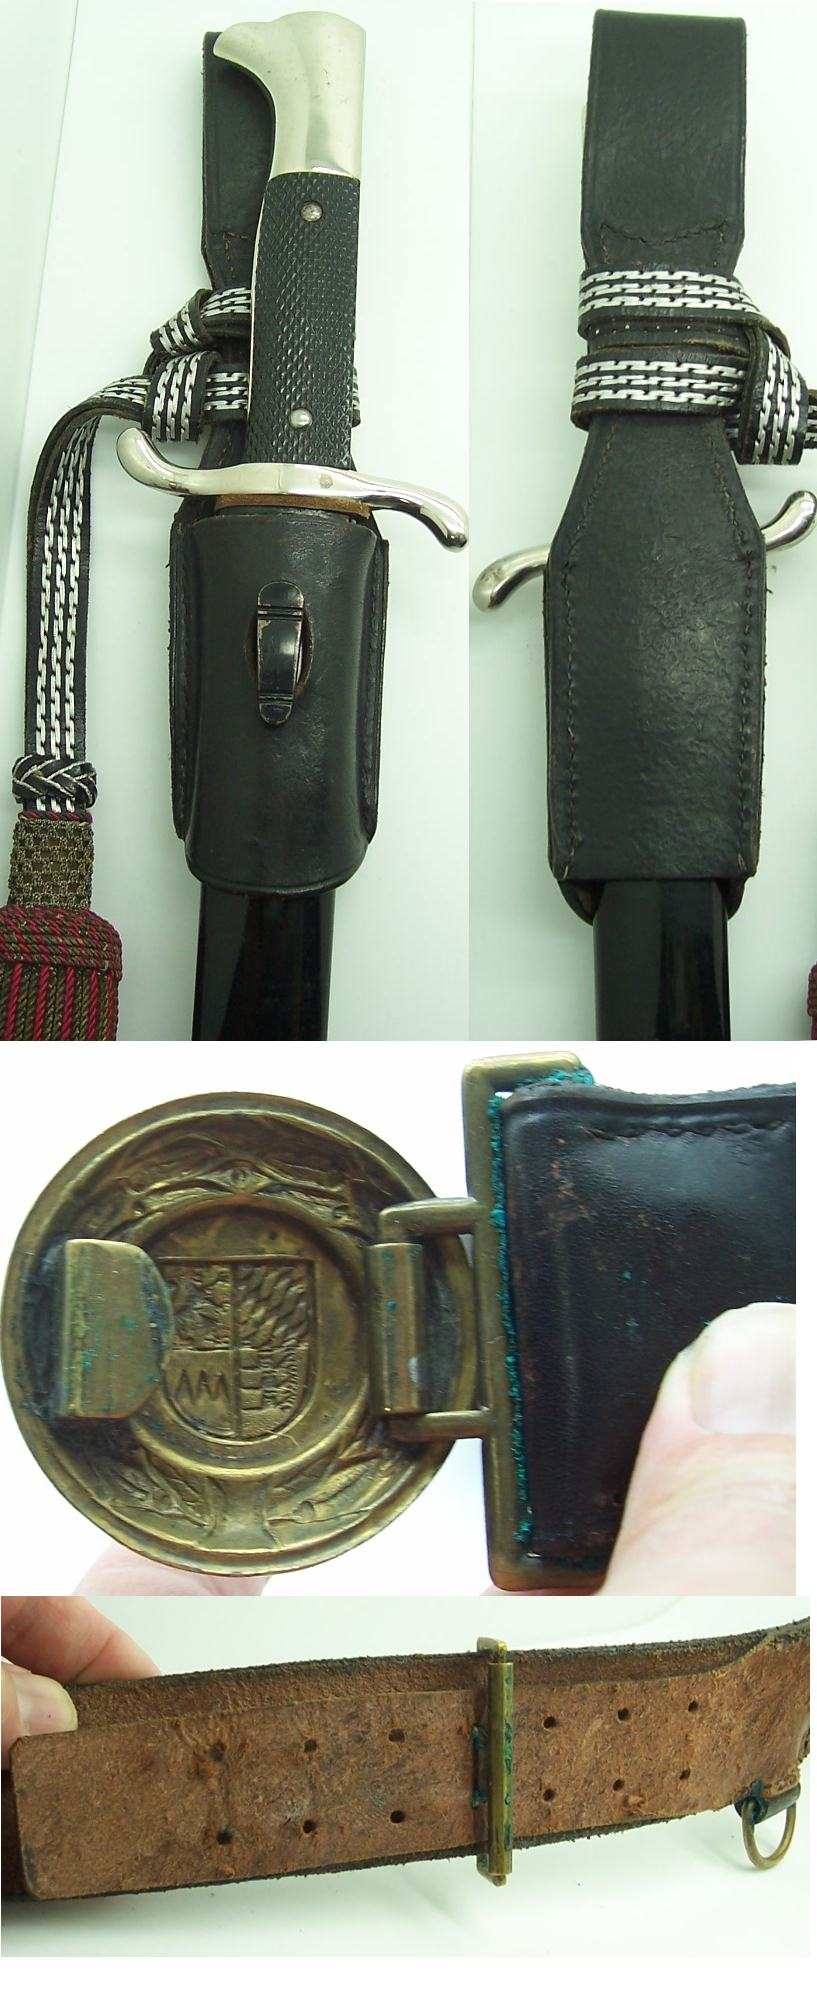 Eickhorn Long Fireman Bayonet and belt